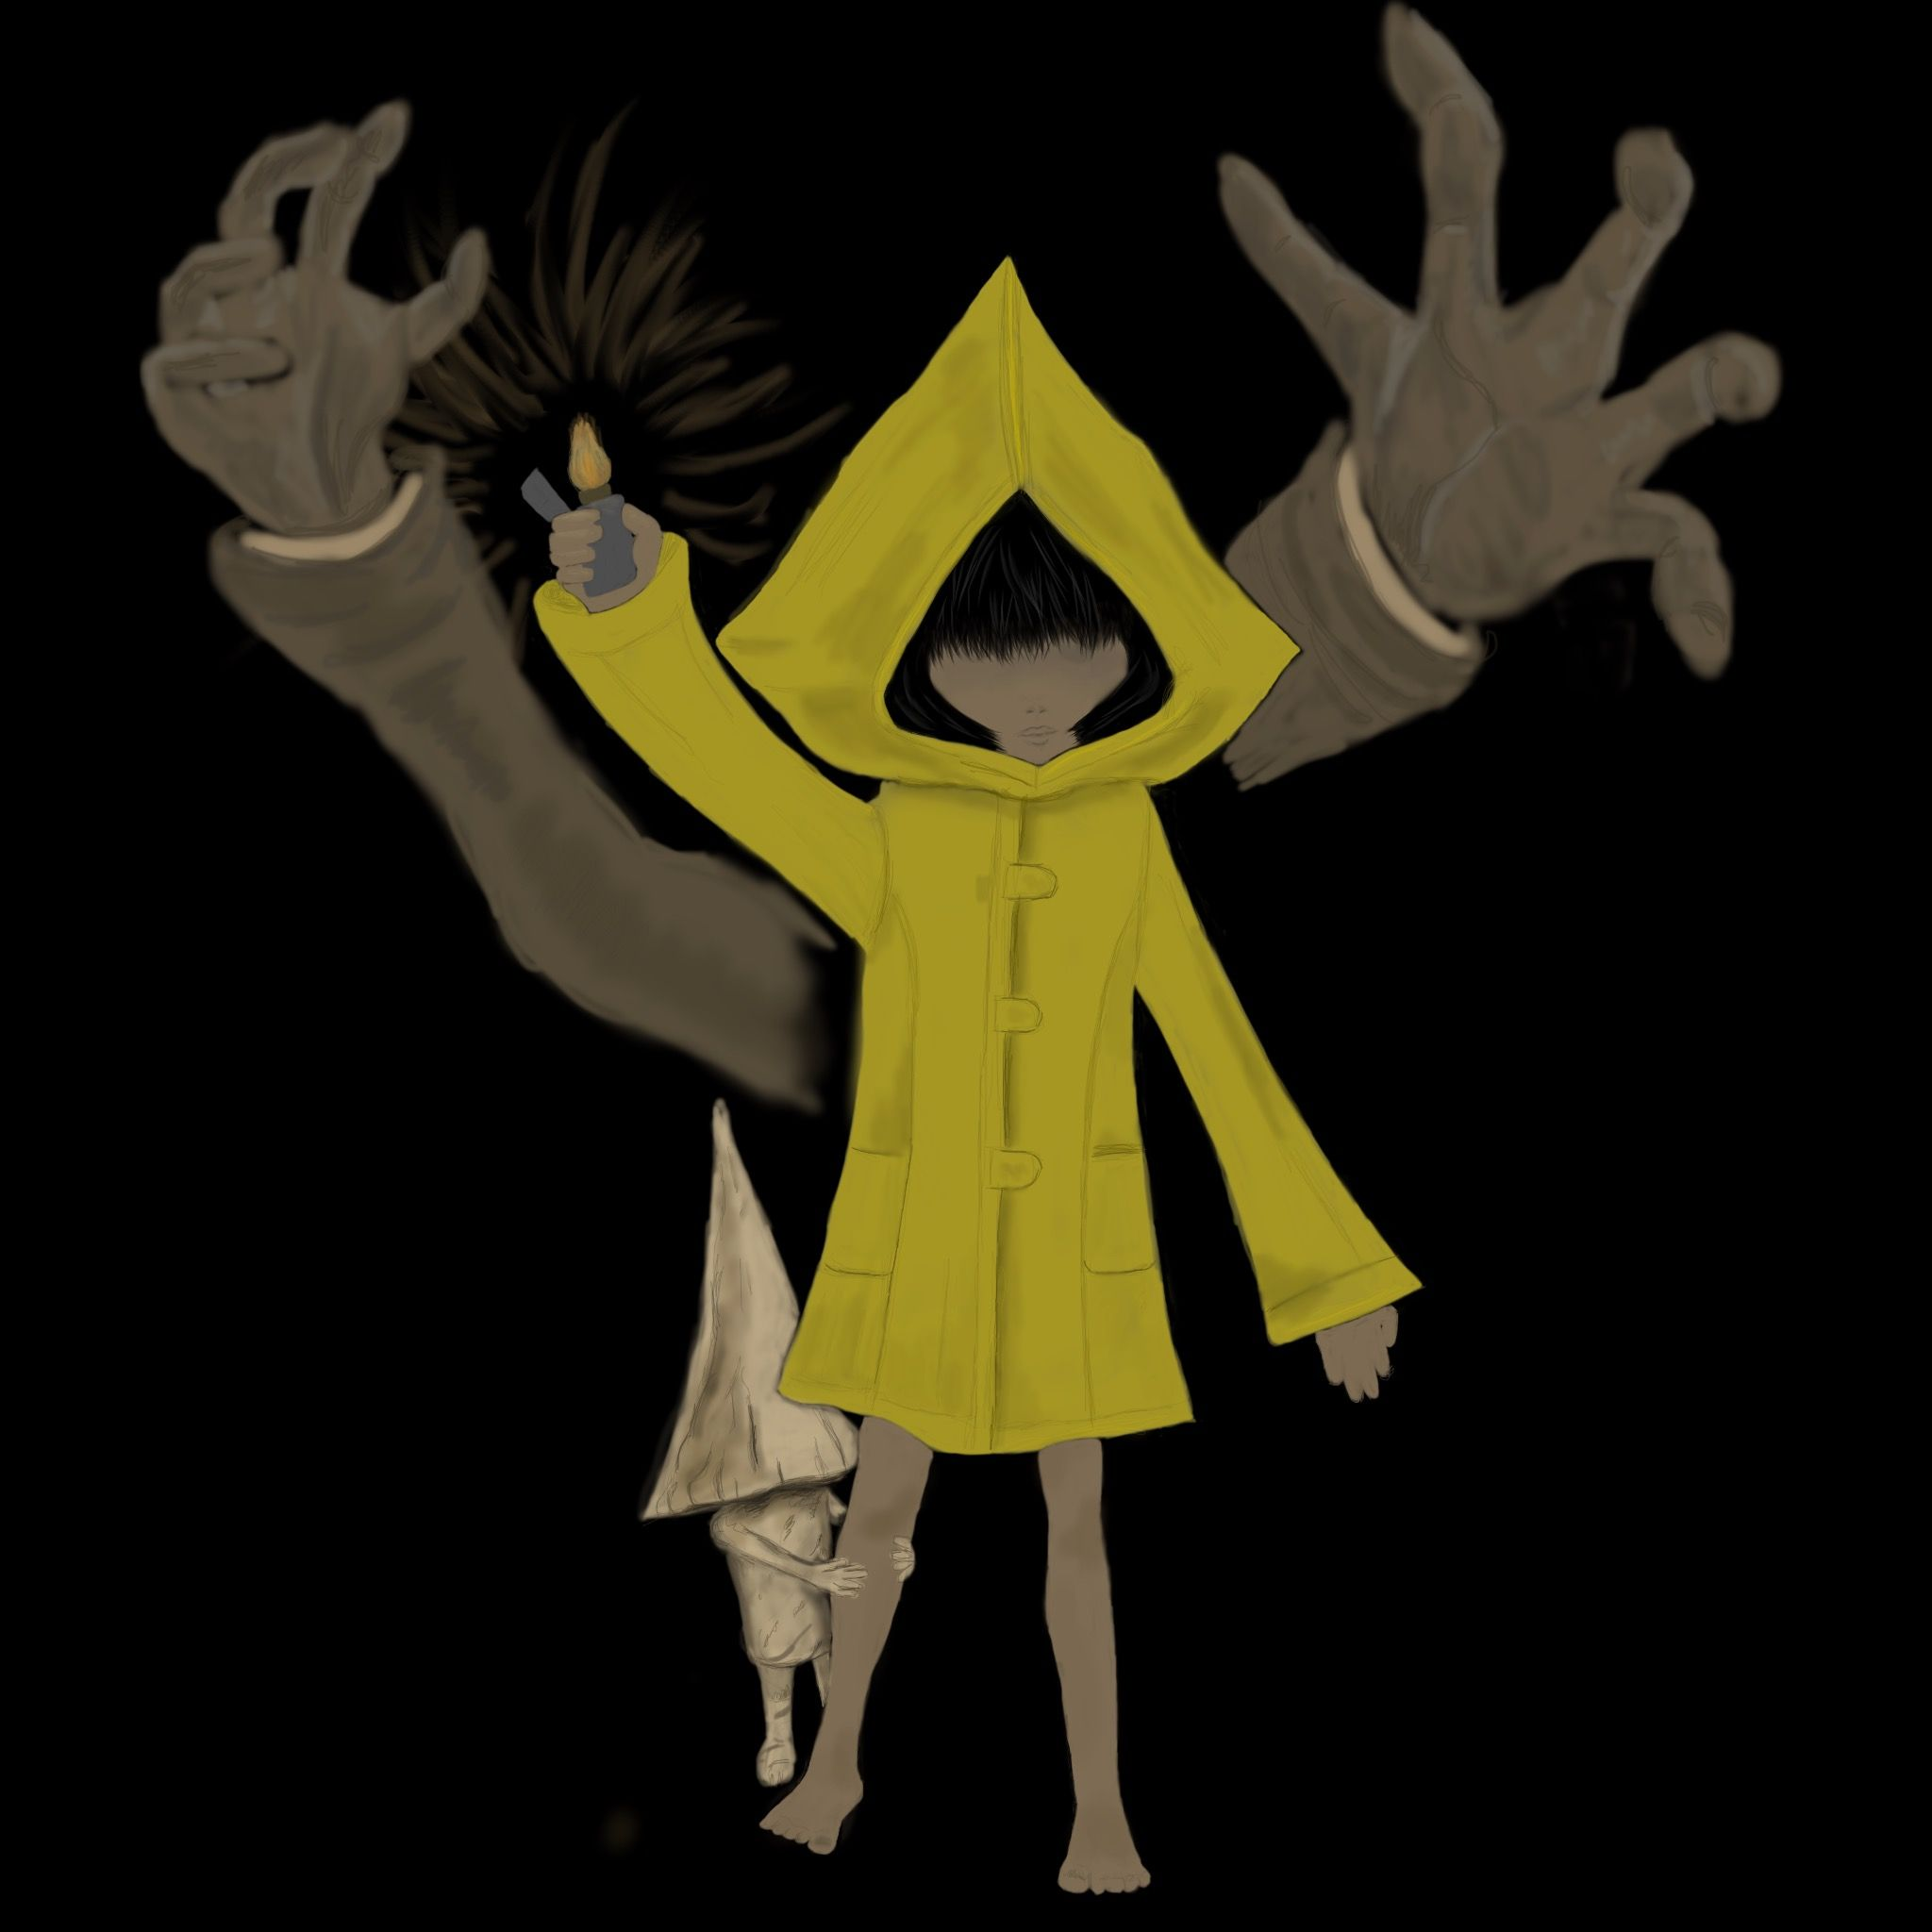 Six The Janitor And Little Gnome Little Nightmares Artwork By Deanna Cooper Littlenightmares Six Horror Nightmares Artwork Nightmare Aurora Sleeping Beauty